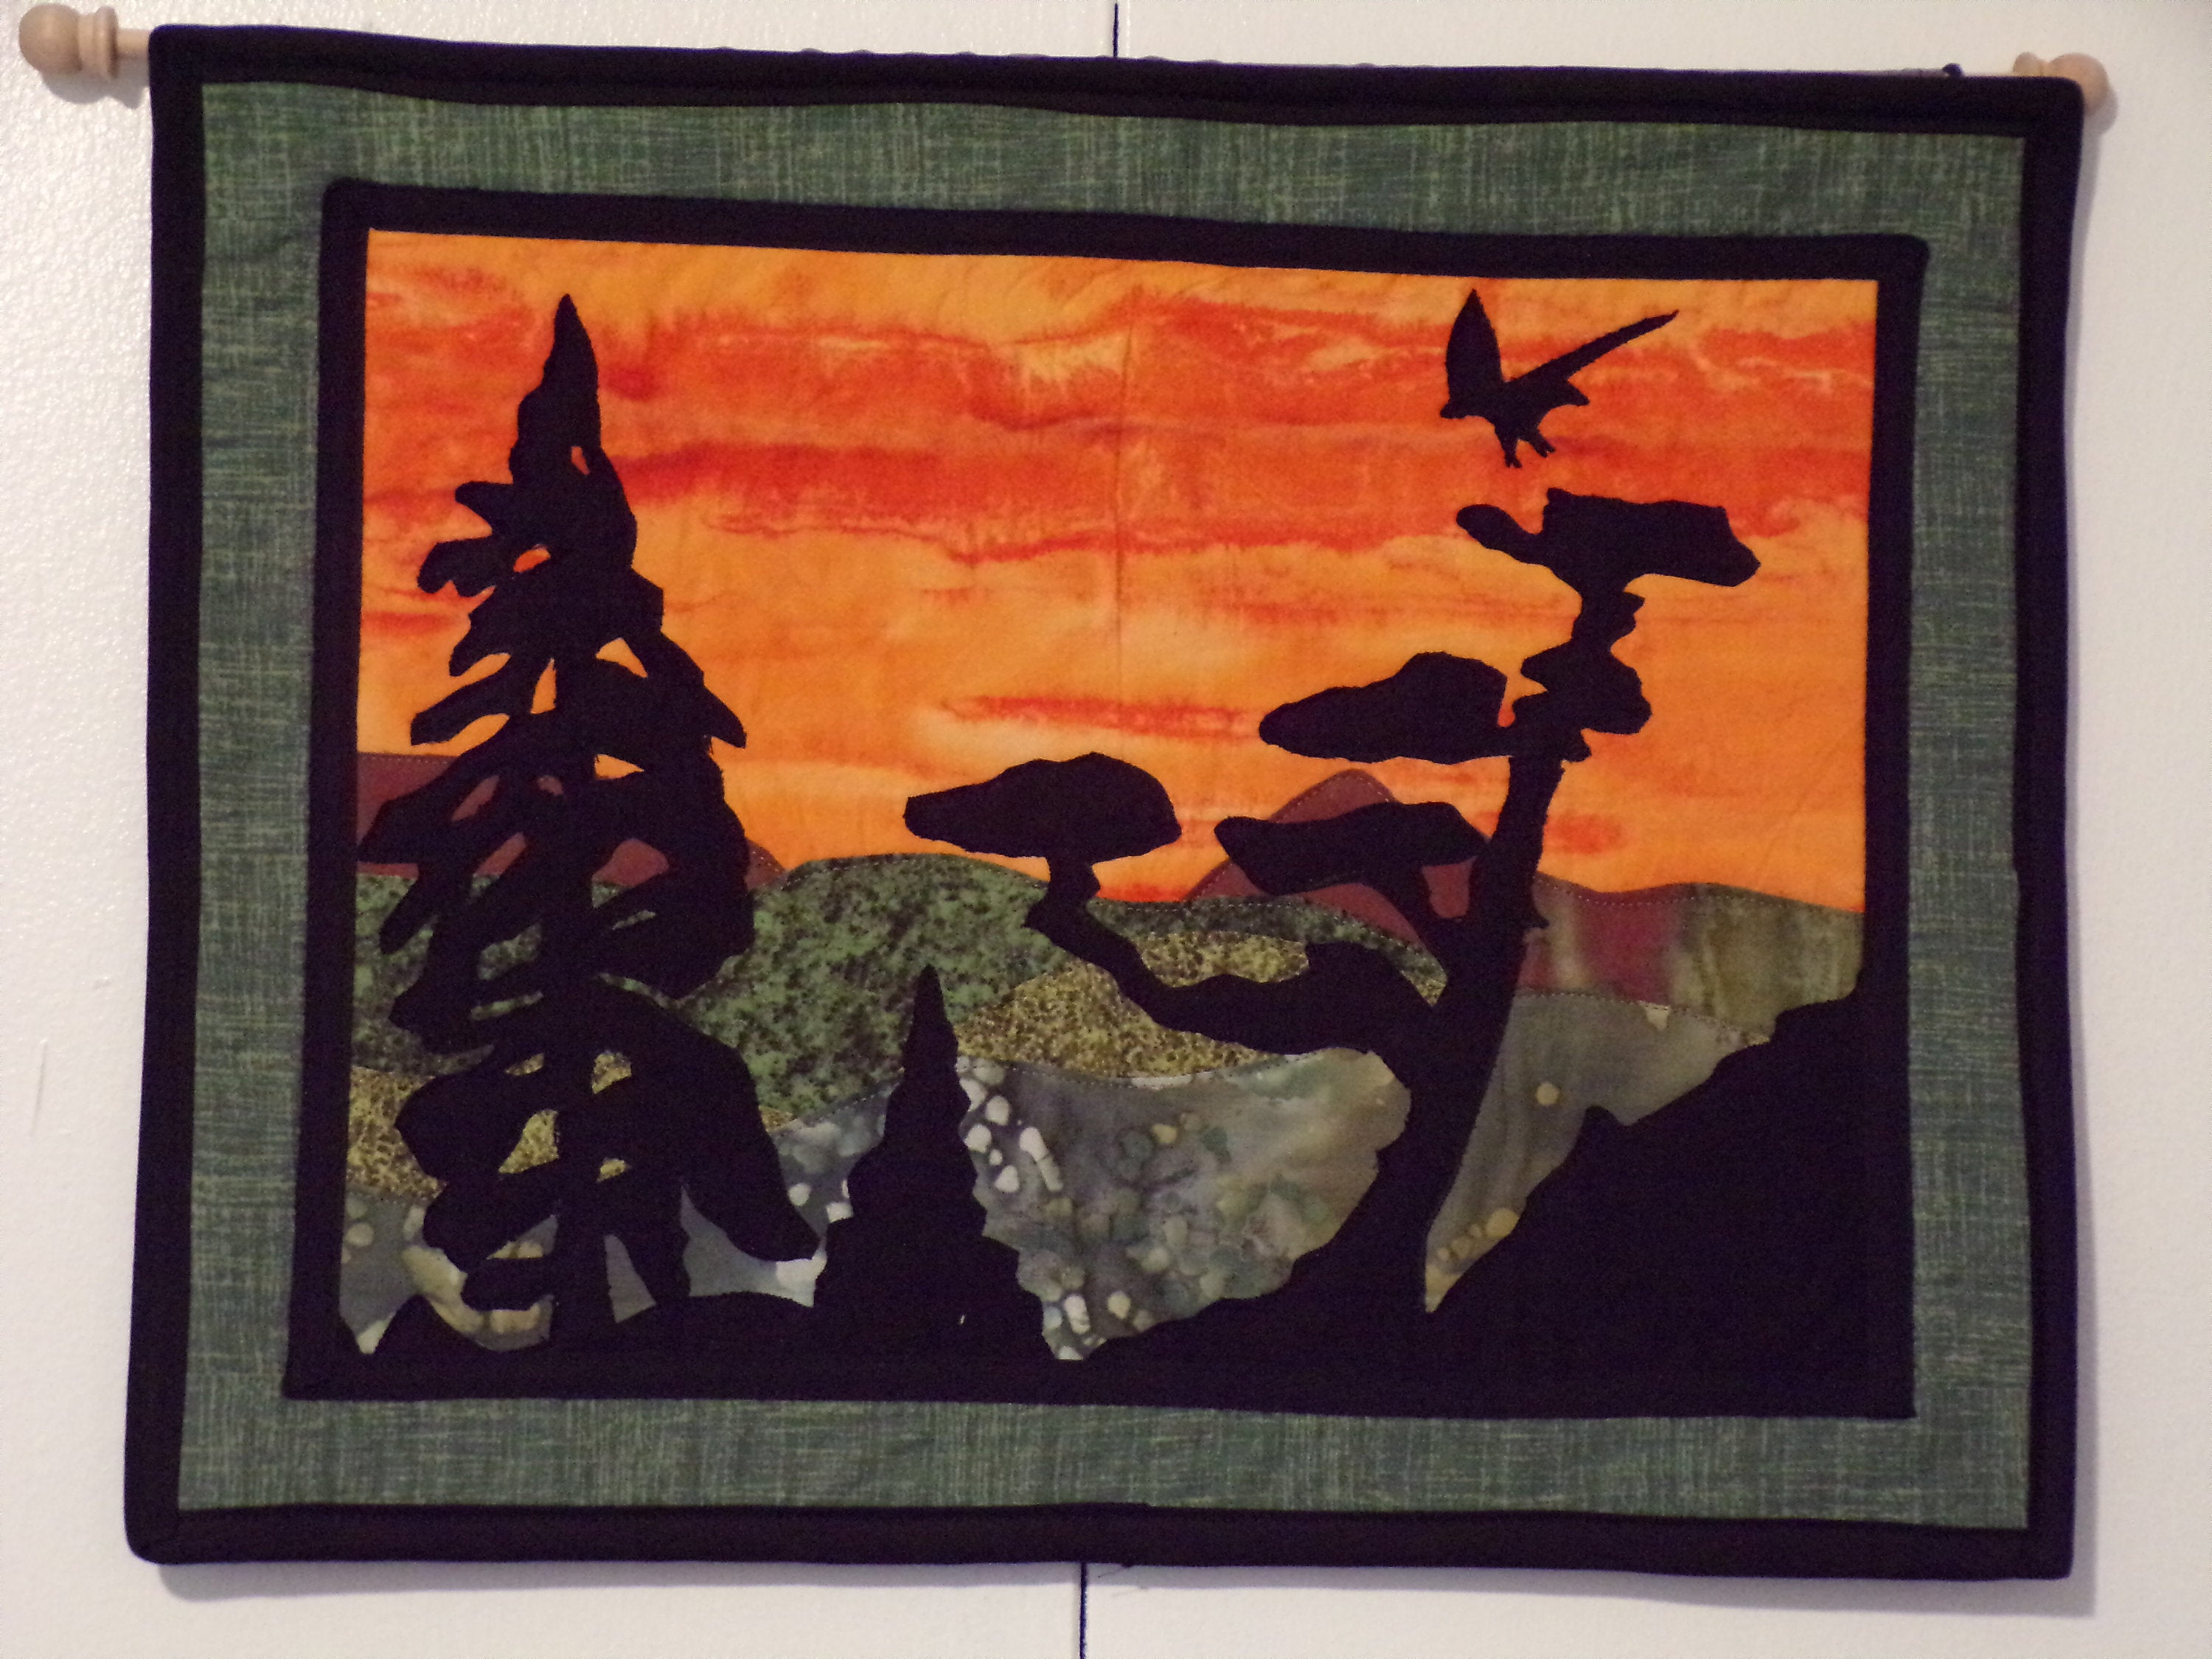 Wall Art, Wall Decor, Eagle's Landing Appliqued Quilt Wall with regard to Landing Art Wall Decor (Image 25 of 30)